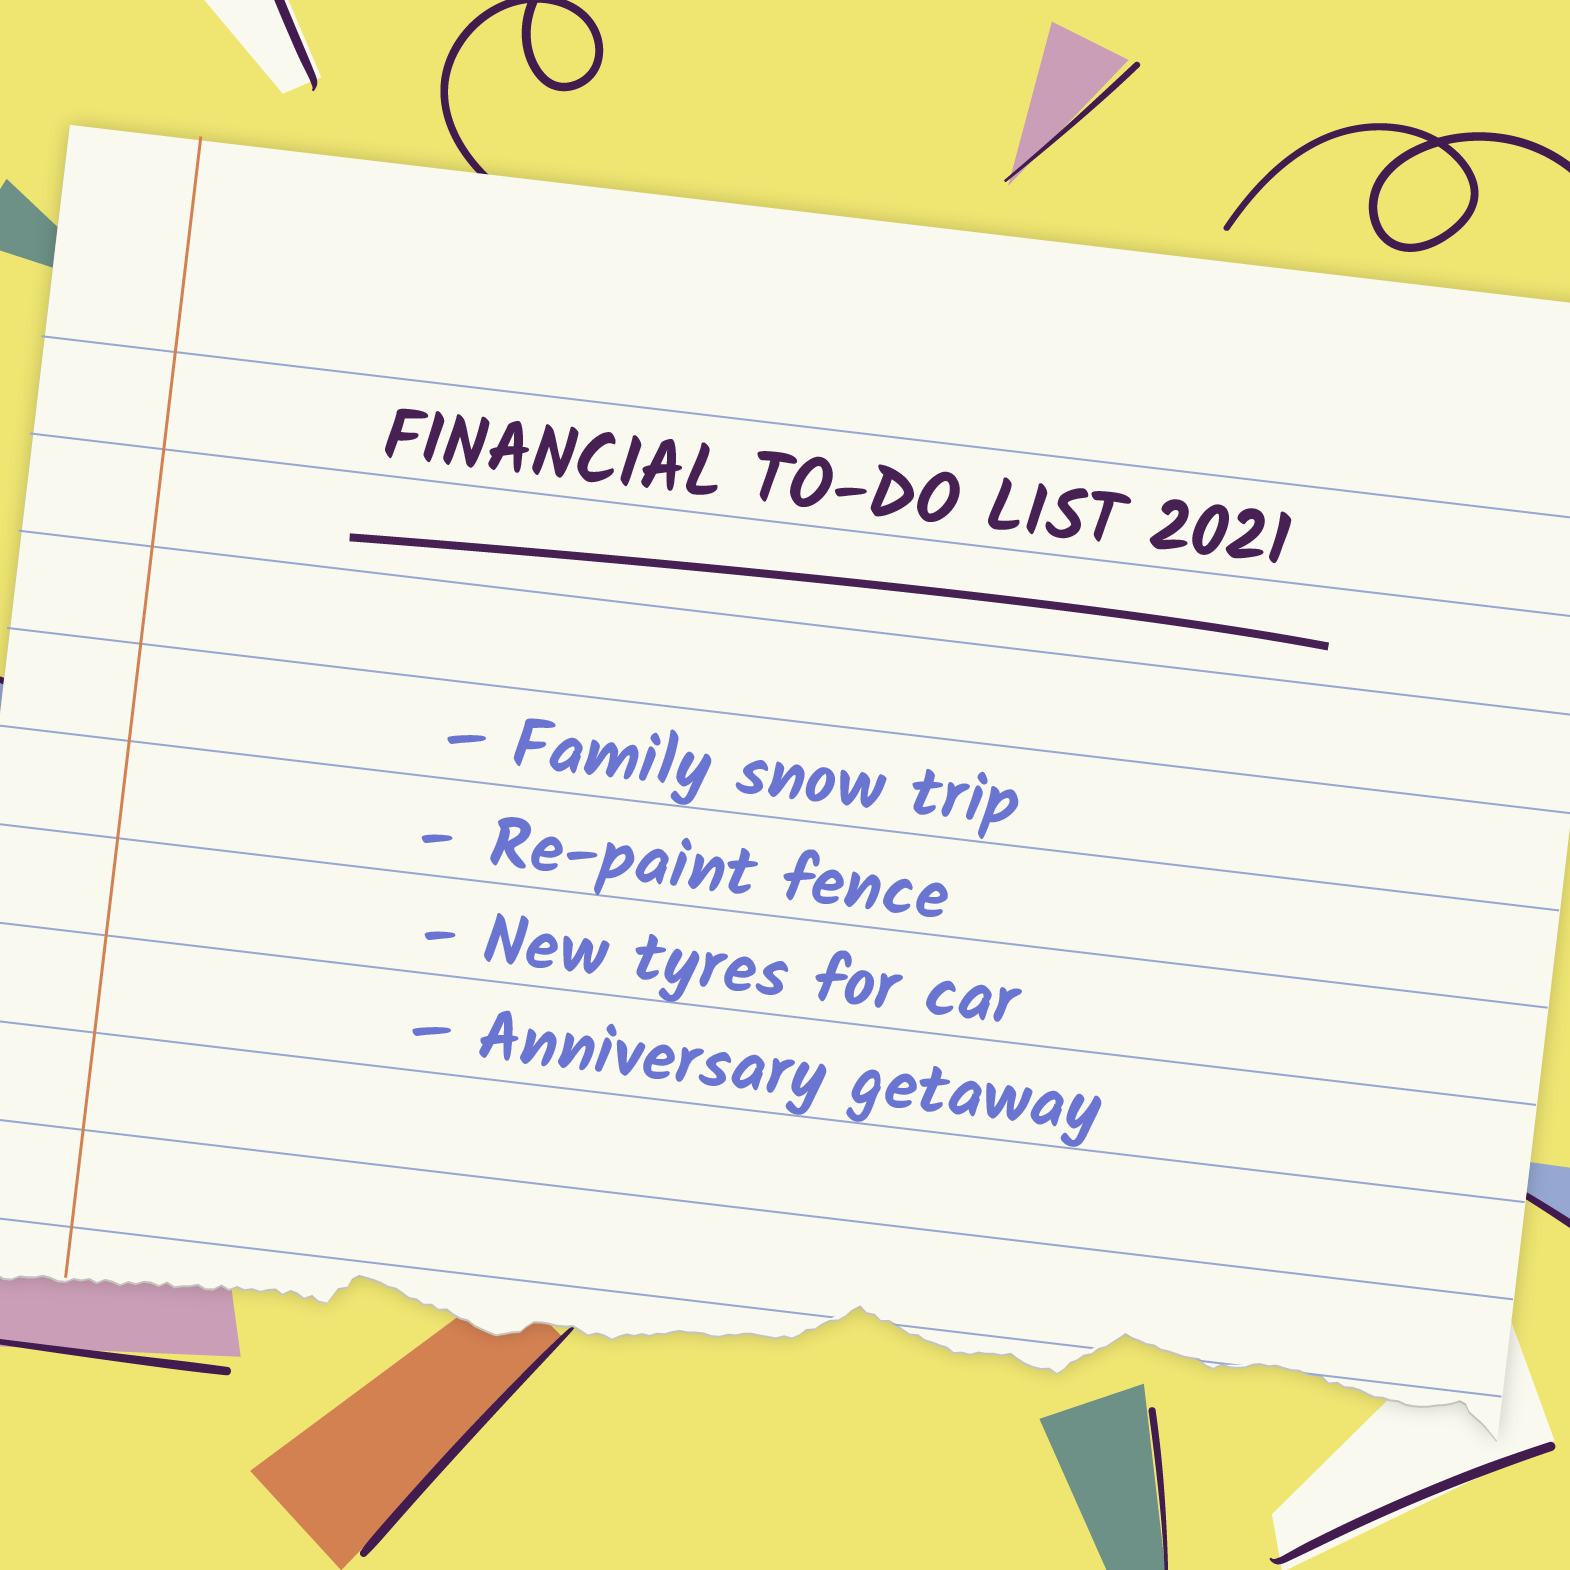 A financial to-do list for the upcoming year